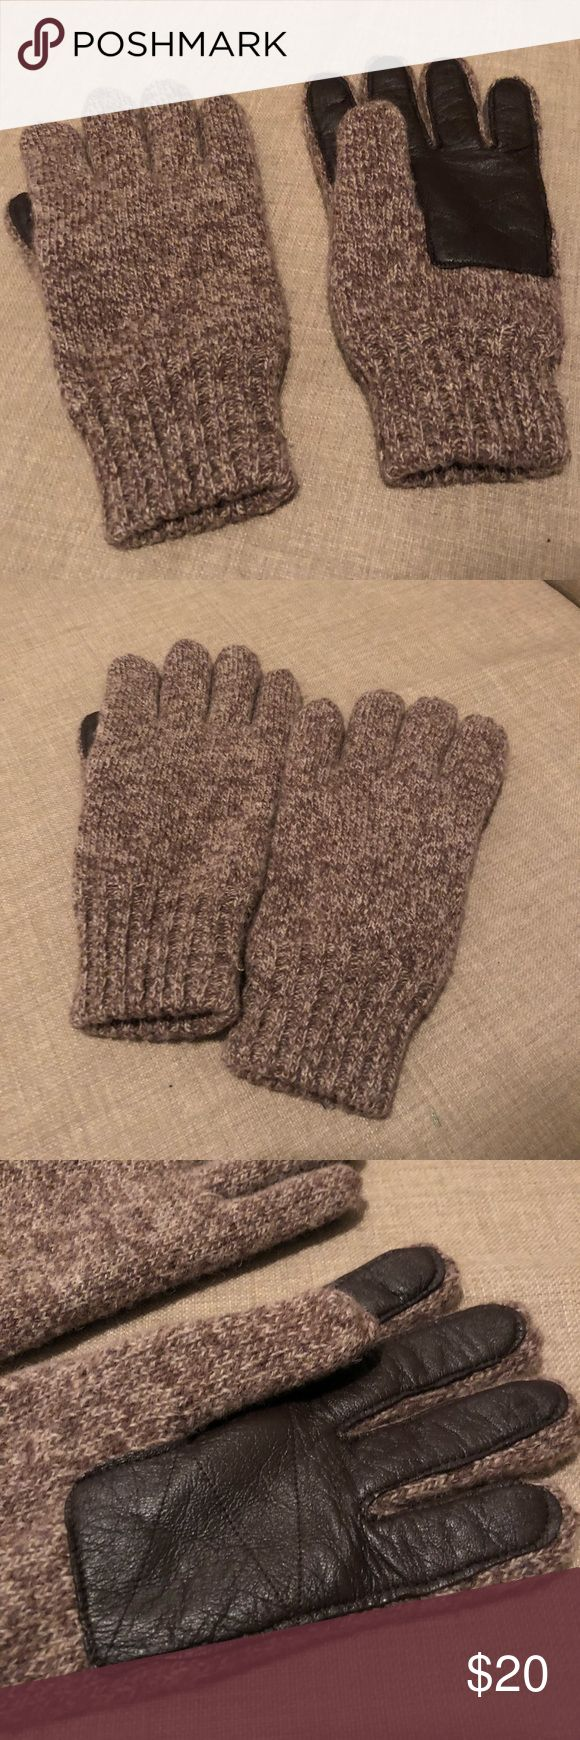 """JCrew Wool Smartphone Gloves Men Size S/M Wonderful pair of gloves never worn! Simply bought in the wrong size.   Perfect give for valentine's day!   From JCrew: These practical gloves are knit in textured wool and finished with leather that works on smartphone surfaces, so you can answer that """"high-priority"""" email without getting frostbite.  Wool, leather. J. Crew Other"""